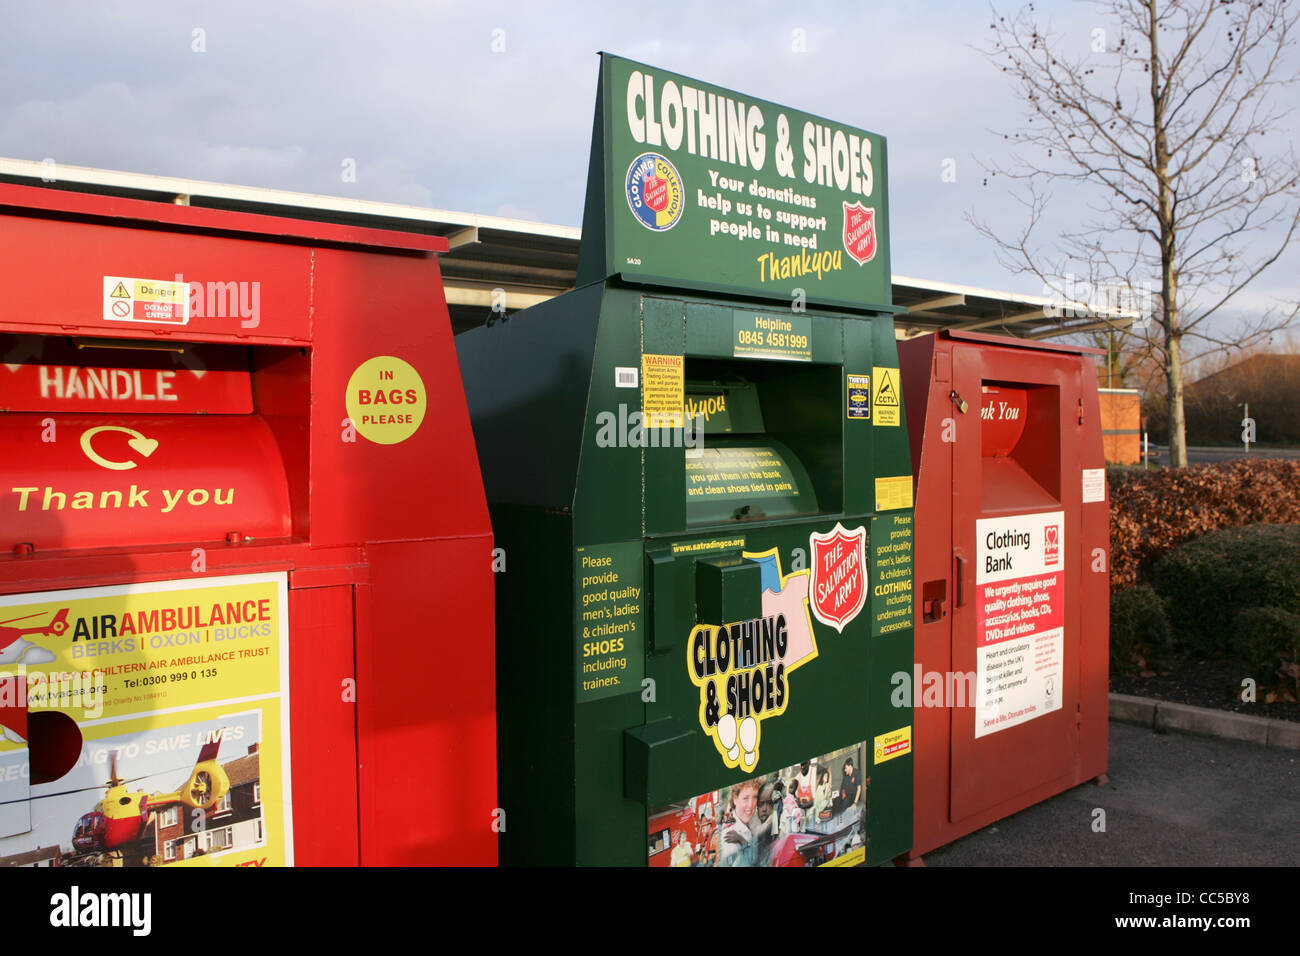 recycling centre at didcot jan 2012 - Stock Image